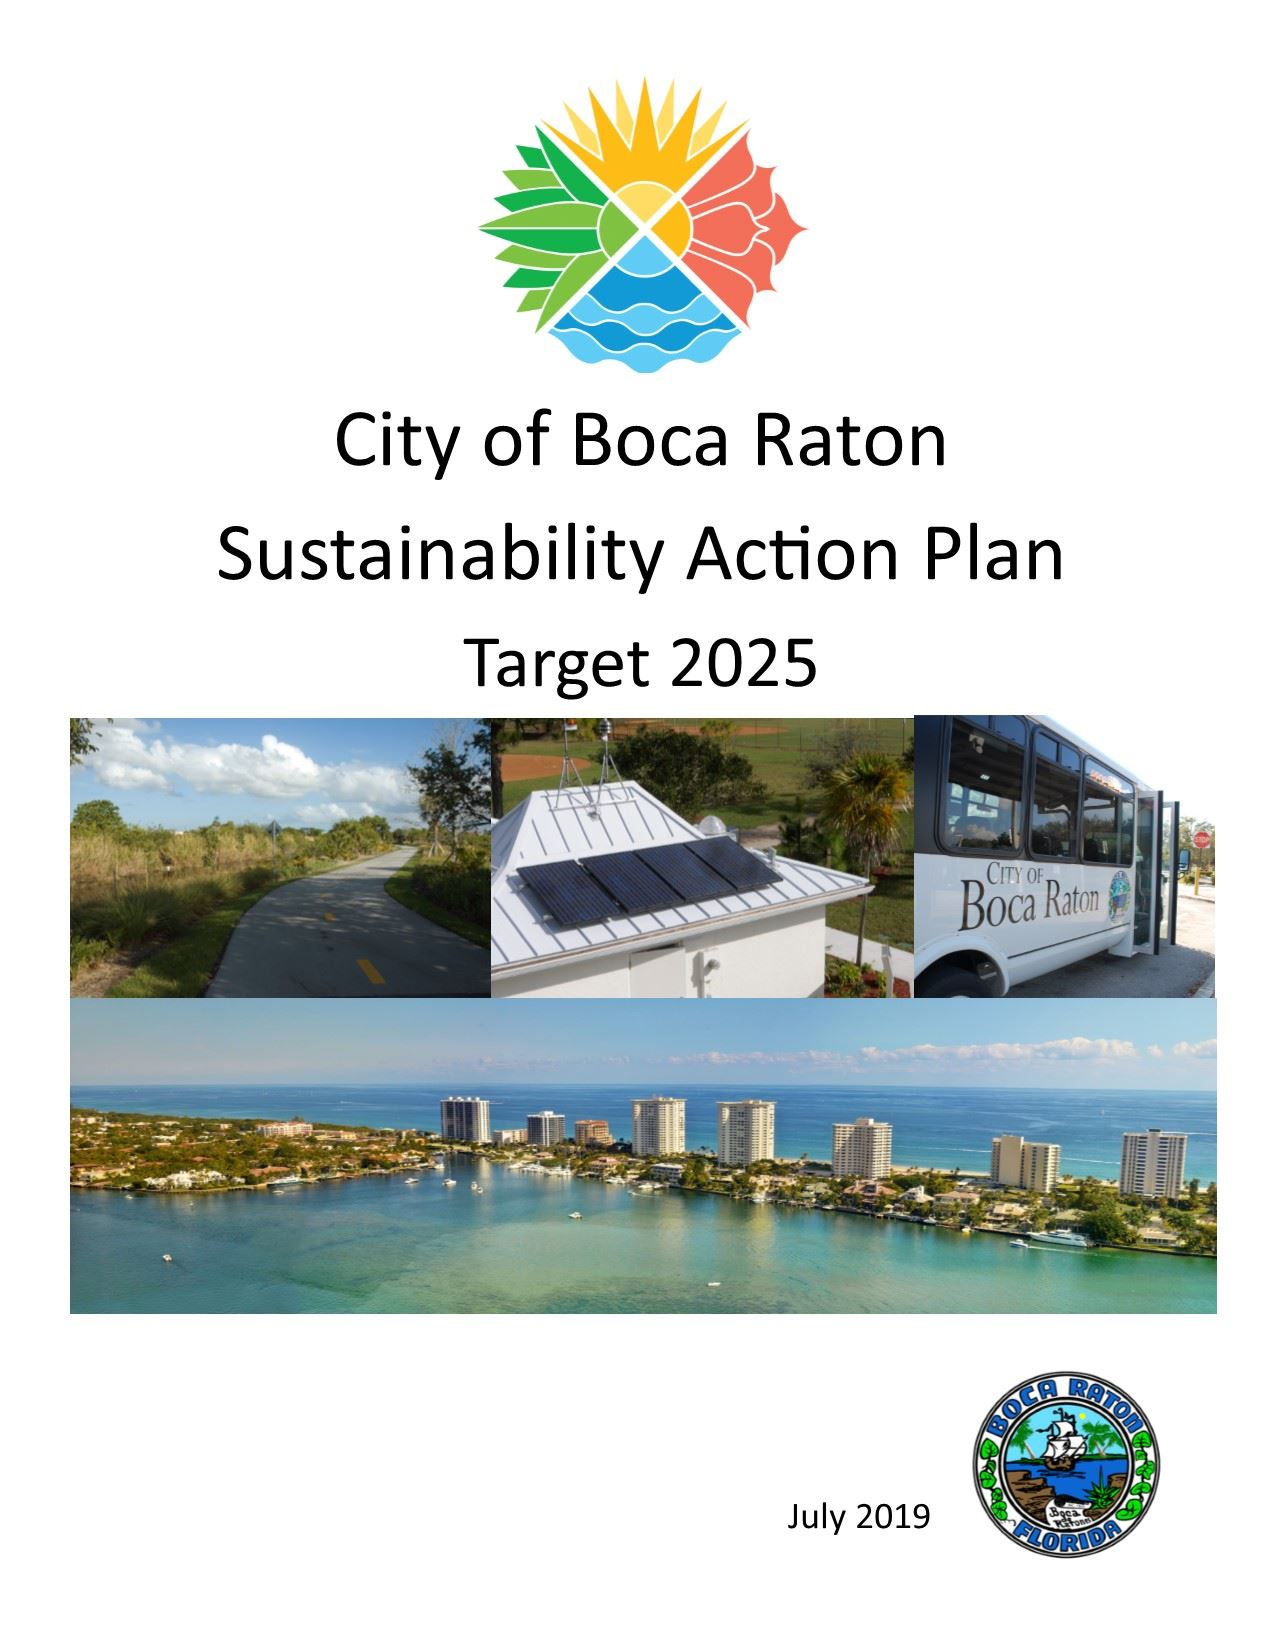 City of Boca Raton Sustainability Action Plan Target 2025 July 2019 Cover Page